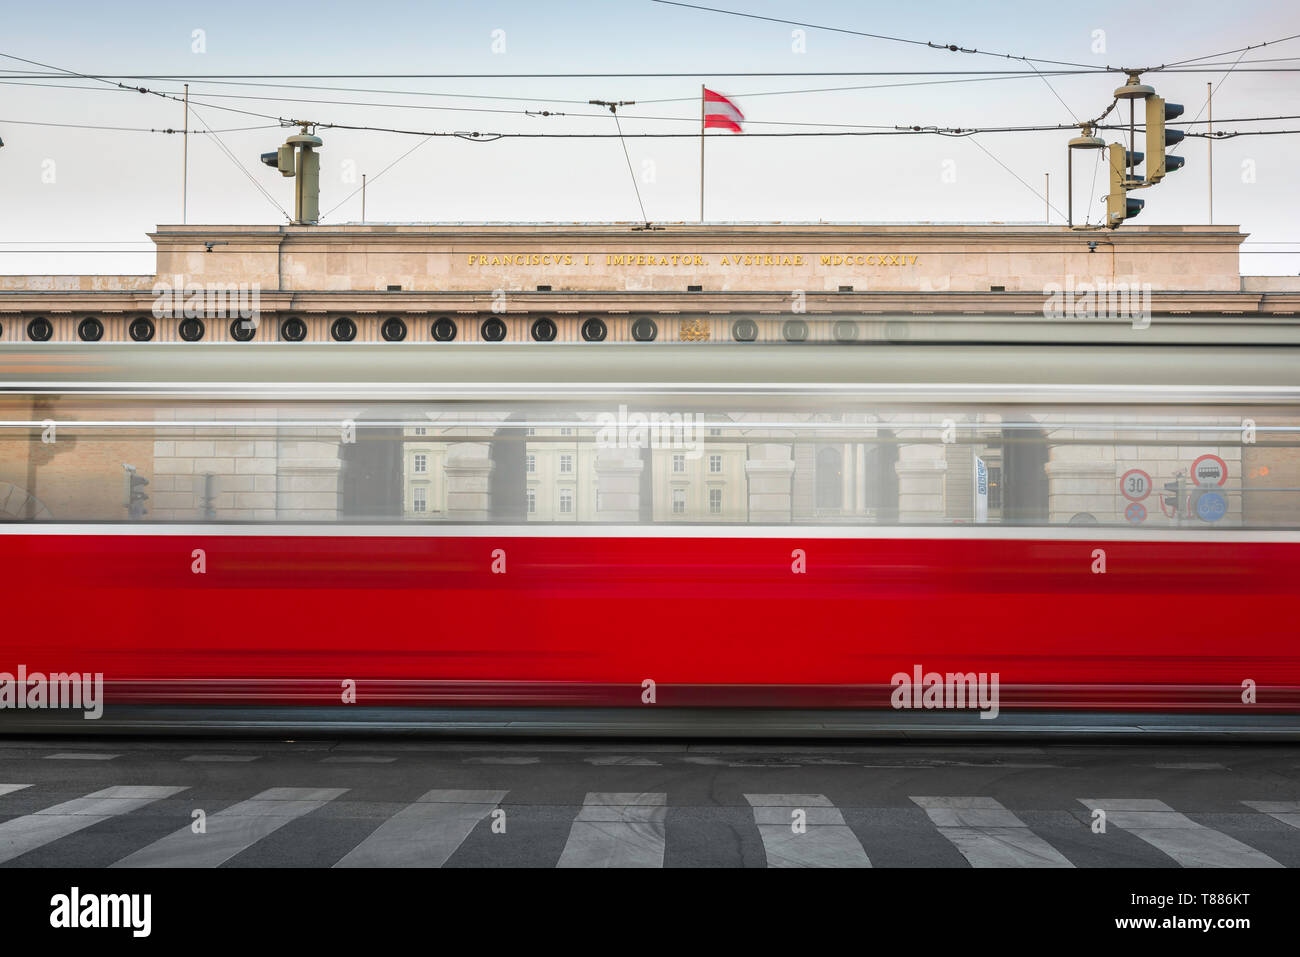 Vienna city transport, view of a tram on the Ringstrasse in Vienna speeding past the (Heldenplatz) entrance to the Hofburg Palace, Austria. Stock Photo